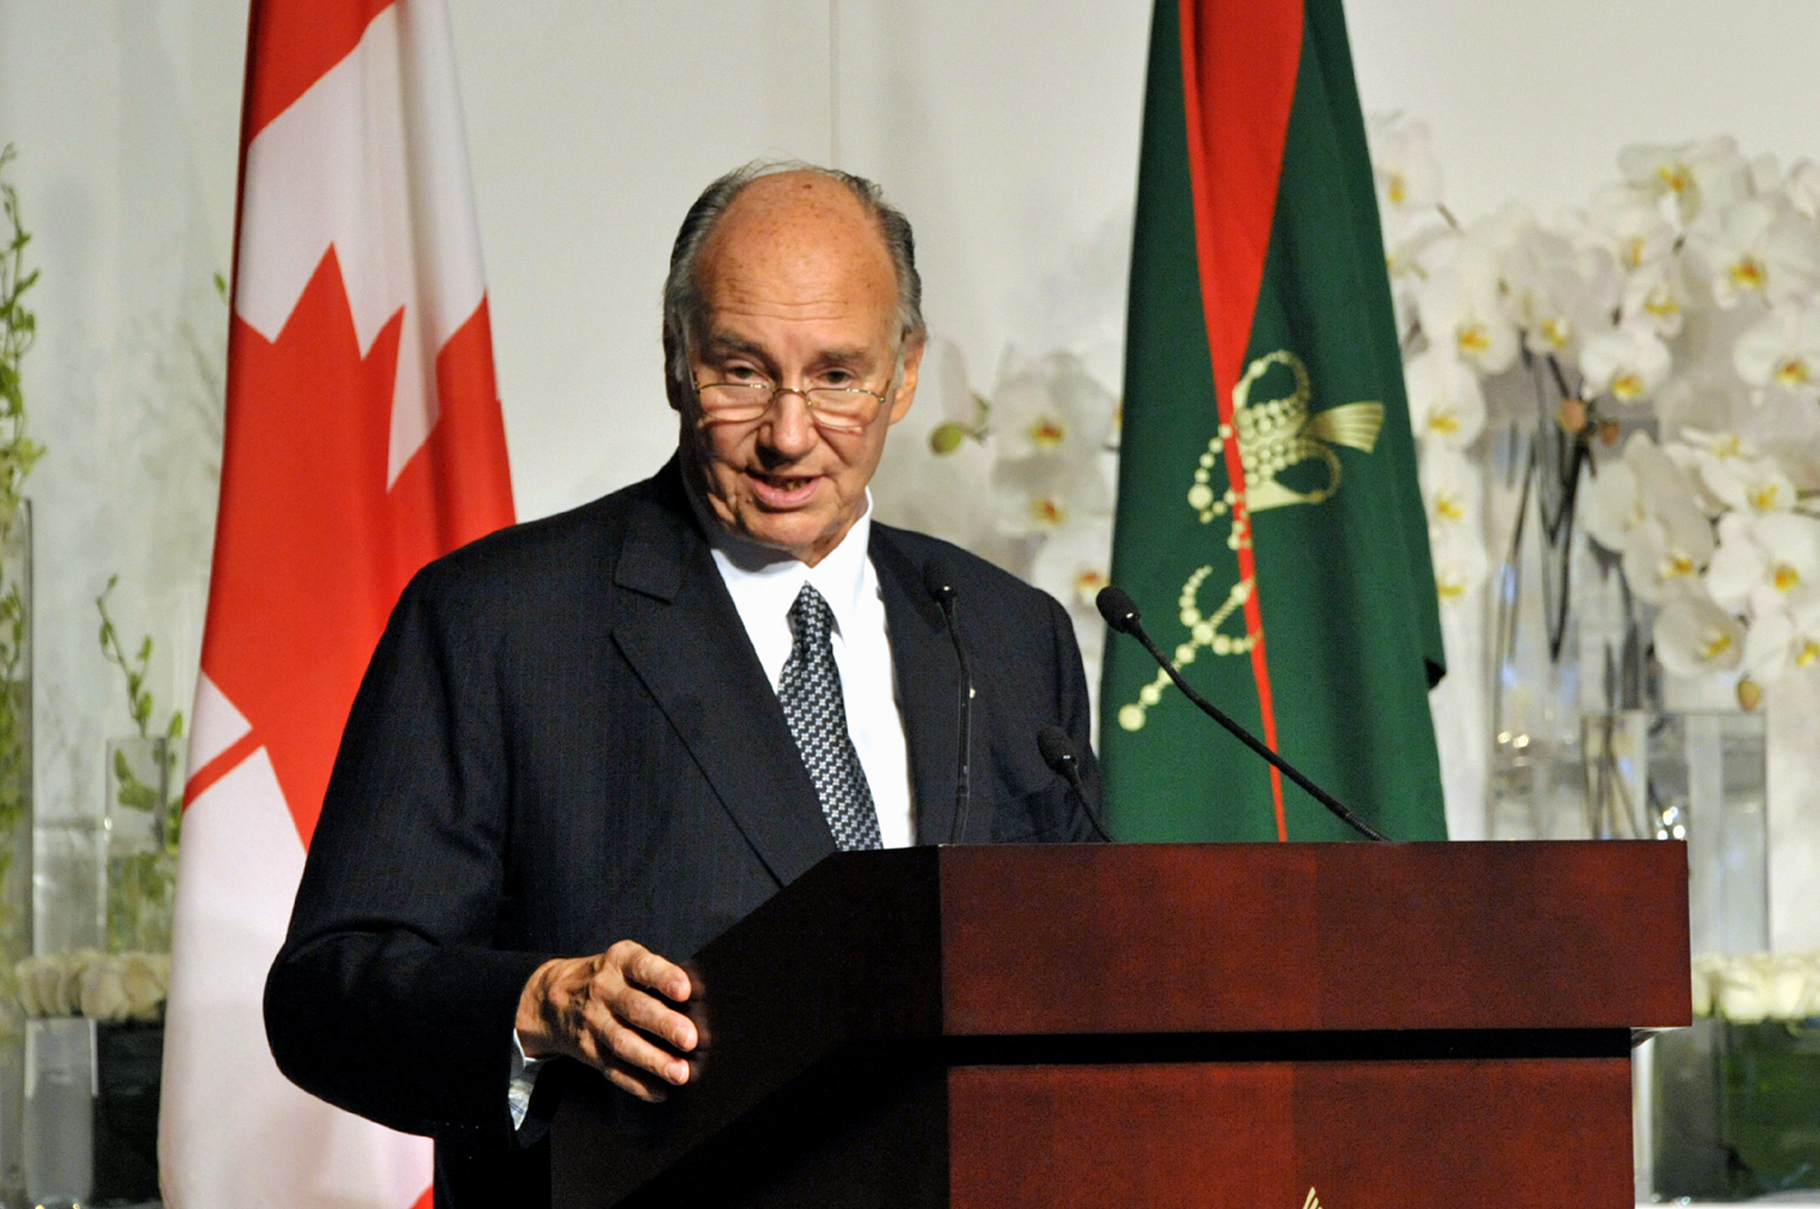 Mawlana Hazar Imam addresses the gathering at the Foundation of the Ismaili Centre, the Aga Khan Museum and their Park in Toronto. Photo: Zahur Ramji